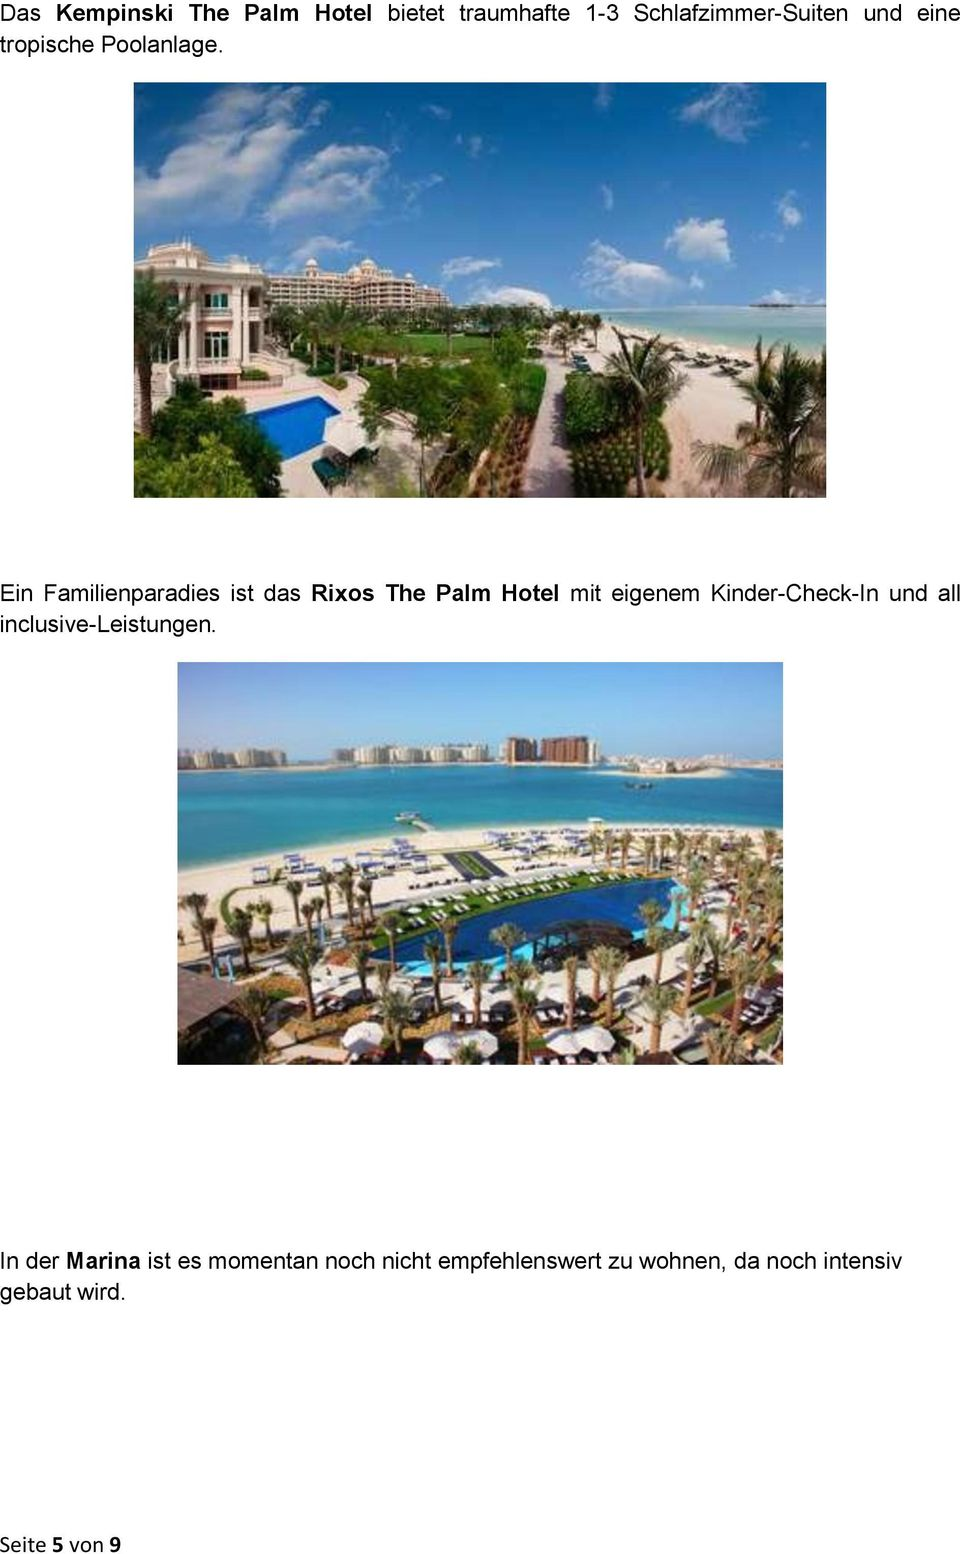 Ein Familienparadies ist das Rixos The Palm Hotel mit eigenem Kinder-Check-In